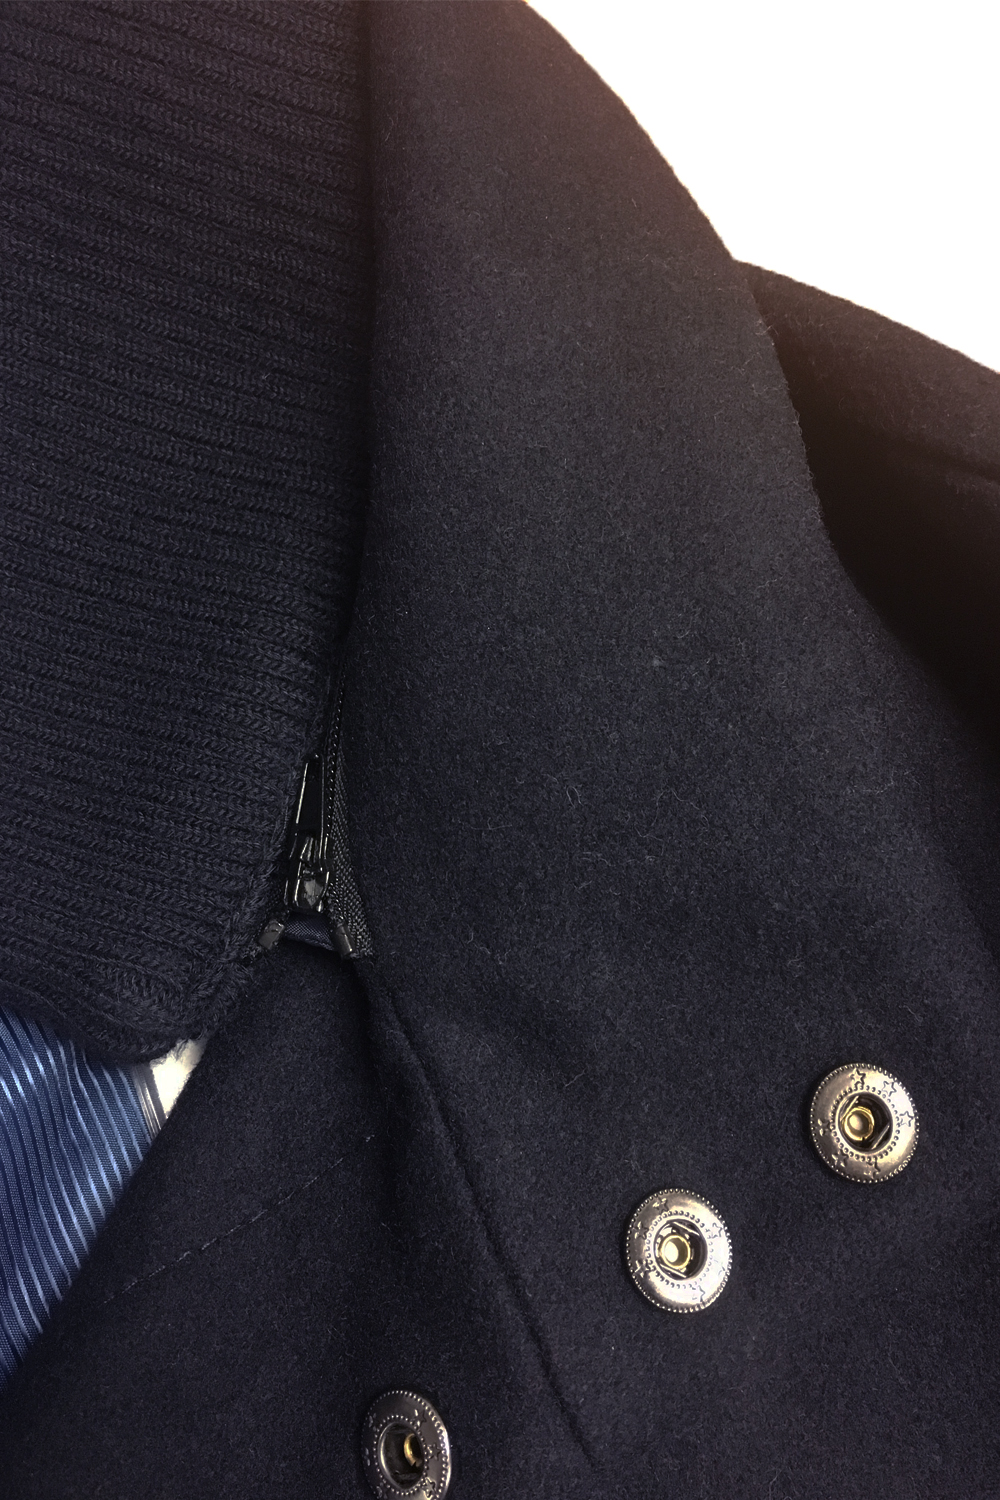 Tokyo-Laundry-Mens-Ackroyd-Smart-Wool-Coat-Funnel-Neck-Zip-Up-Collared-Jacket thumbnail 4